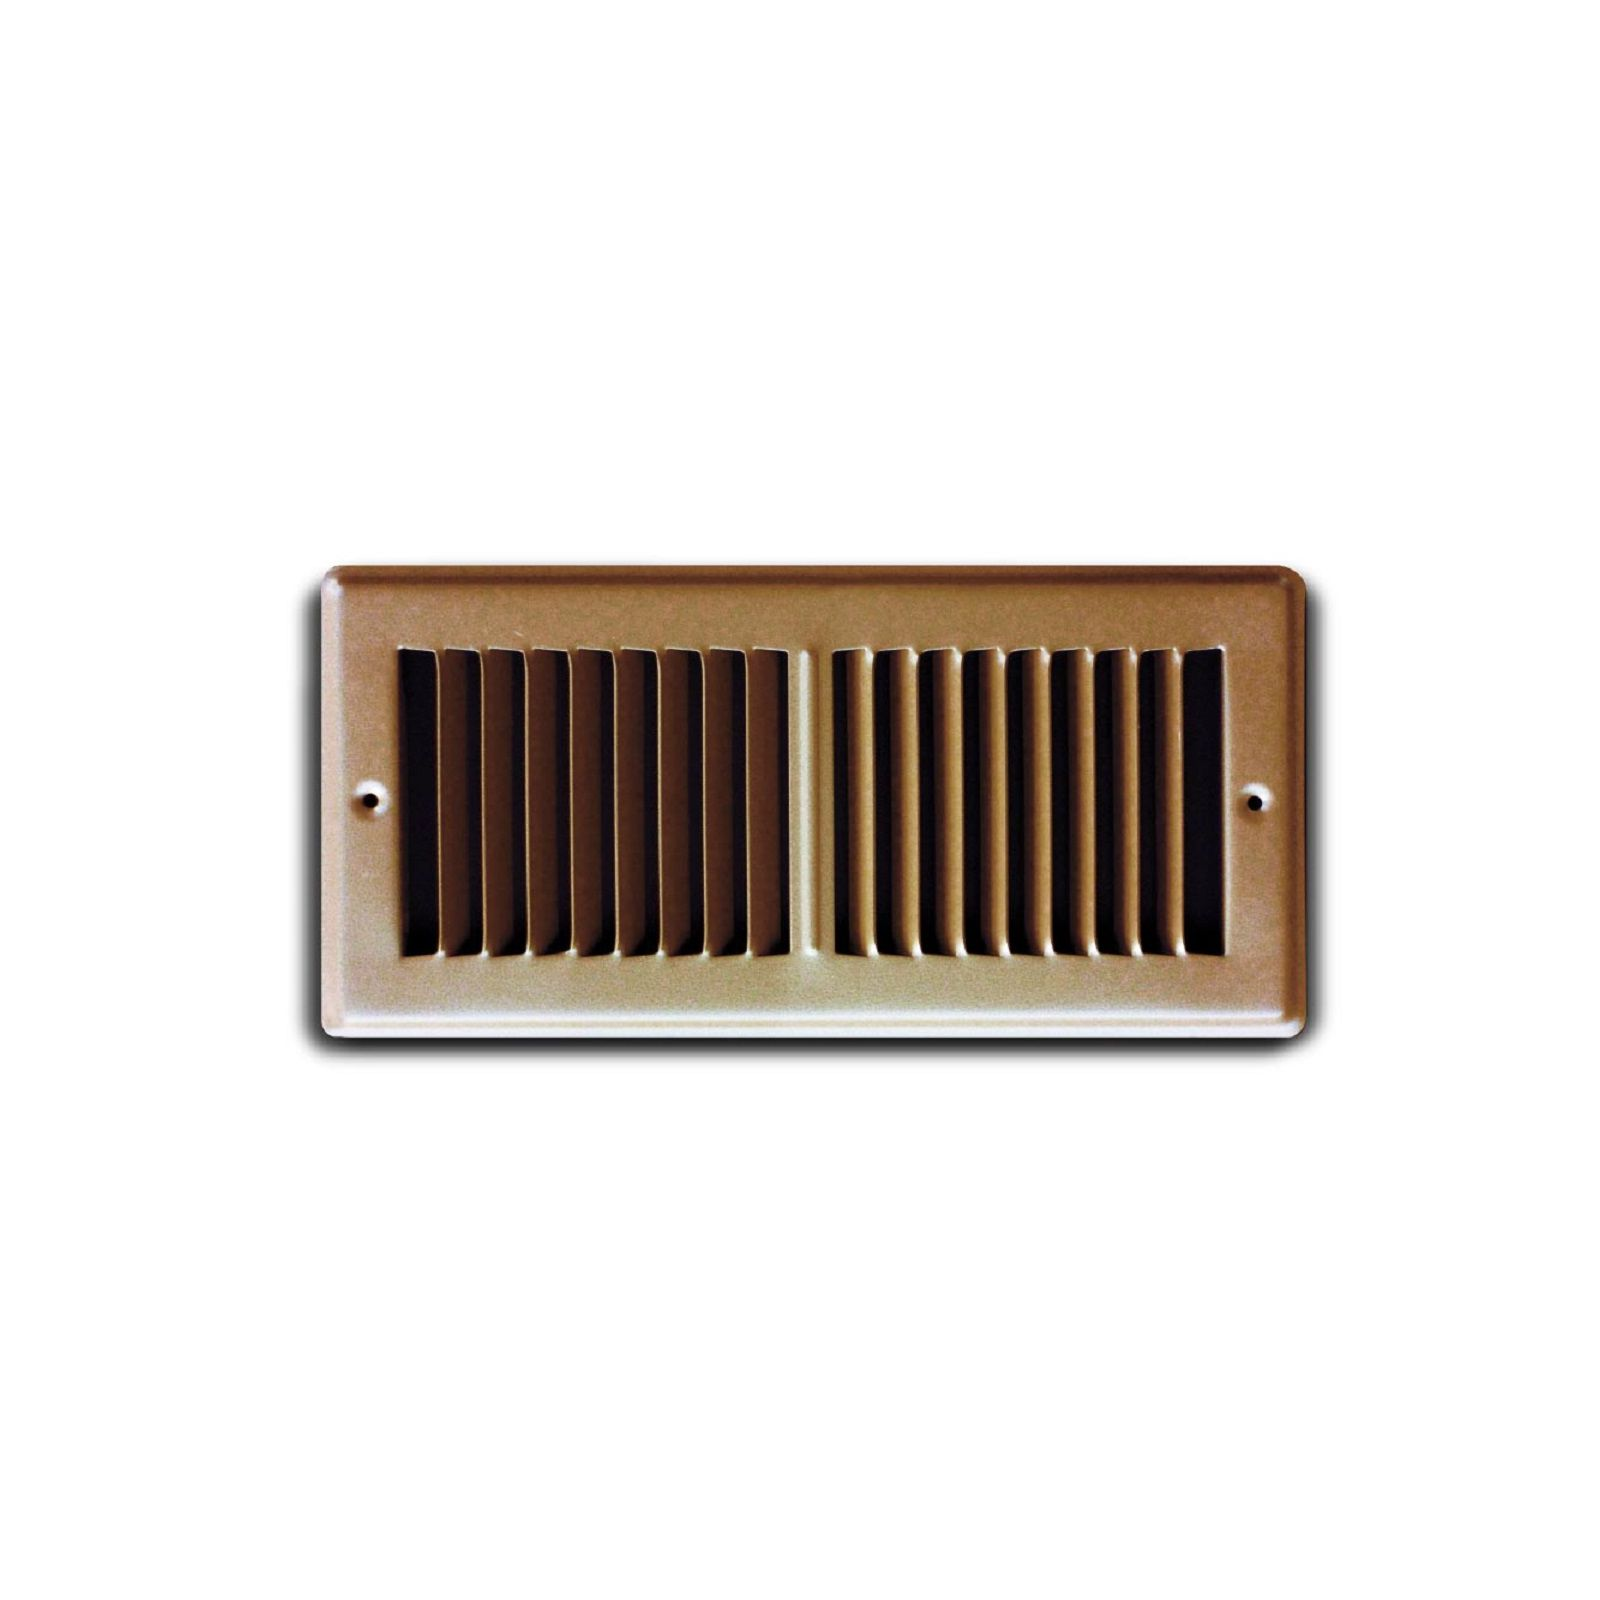 "TRUaire 150TSB 02X12 - Steel Stamped Toe Space Floor Grille, Brown, 02"" X 12"""